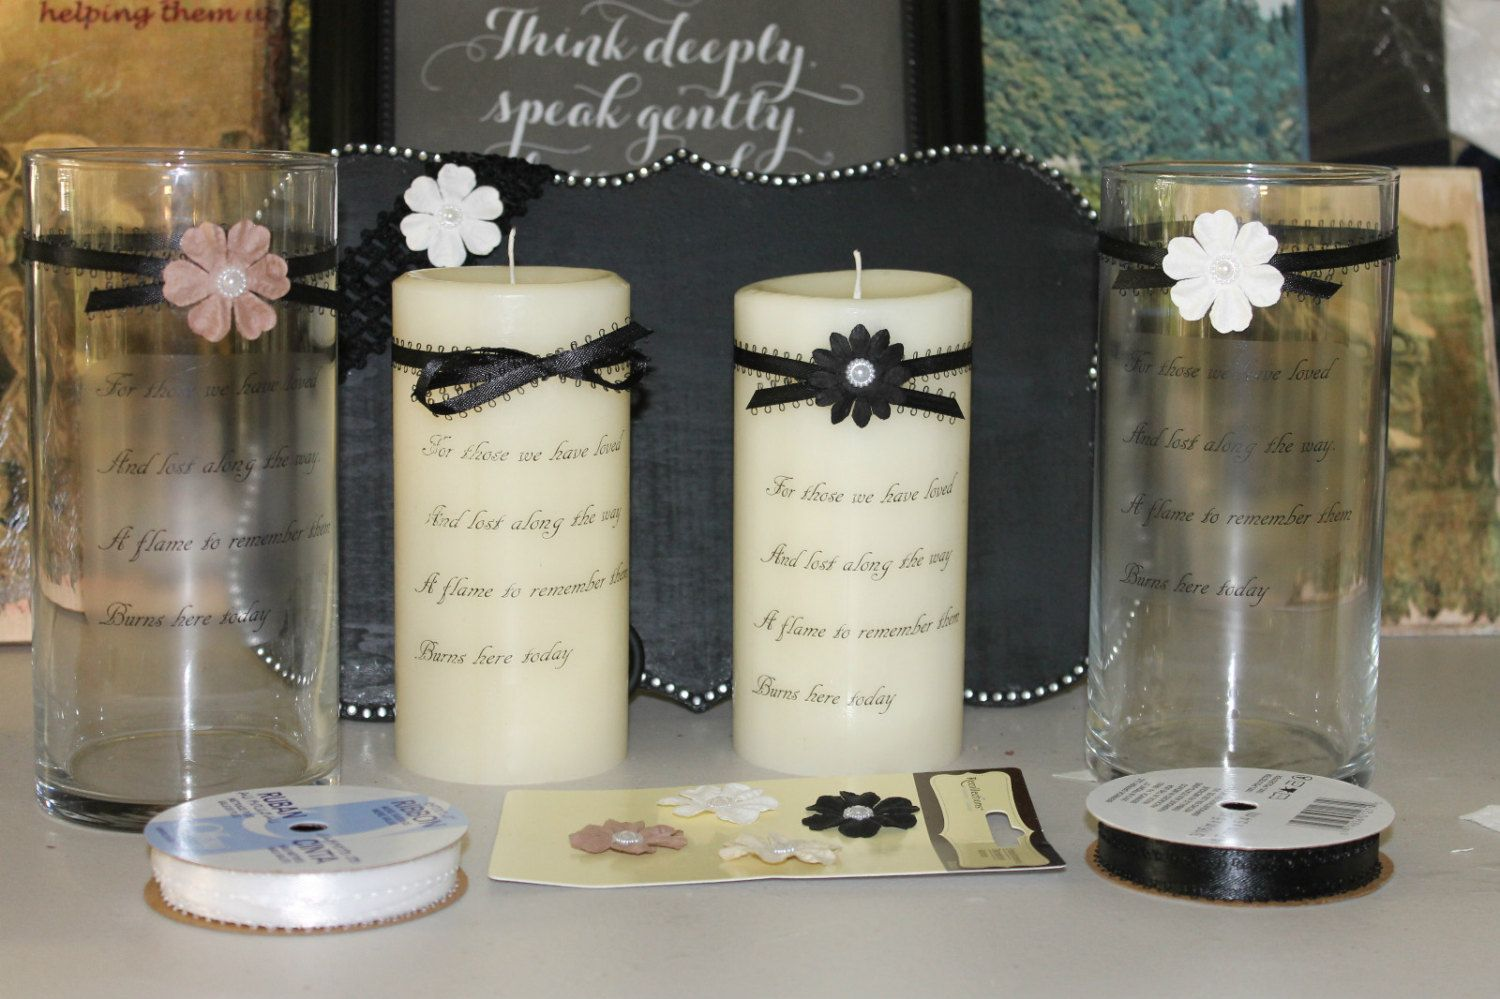 For those we have loved memory memorial candles or candle hurricane explore do it yourself crafts memorial candles and more solutioingenieria Gallery